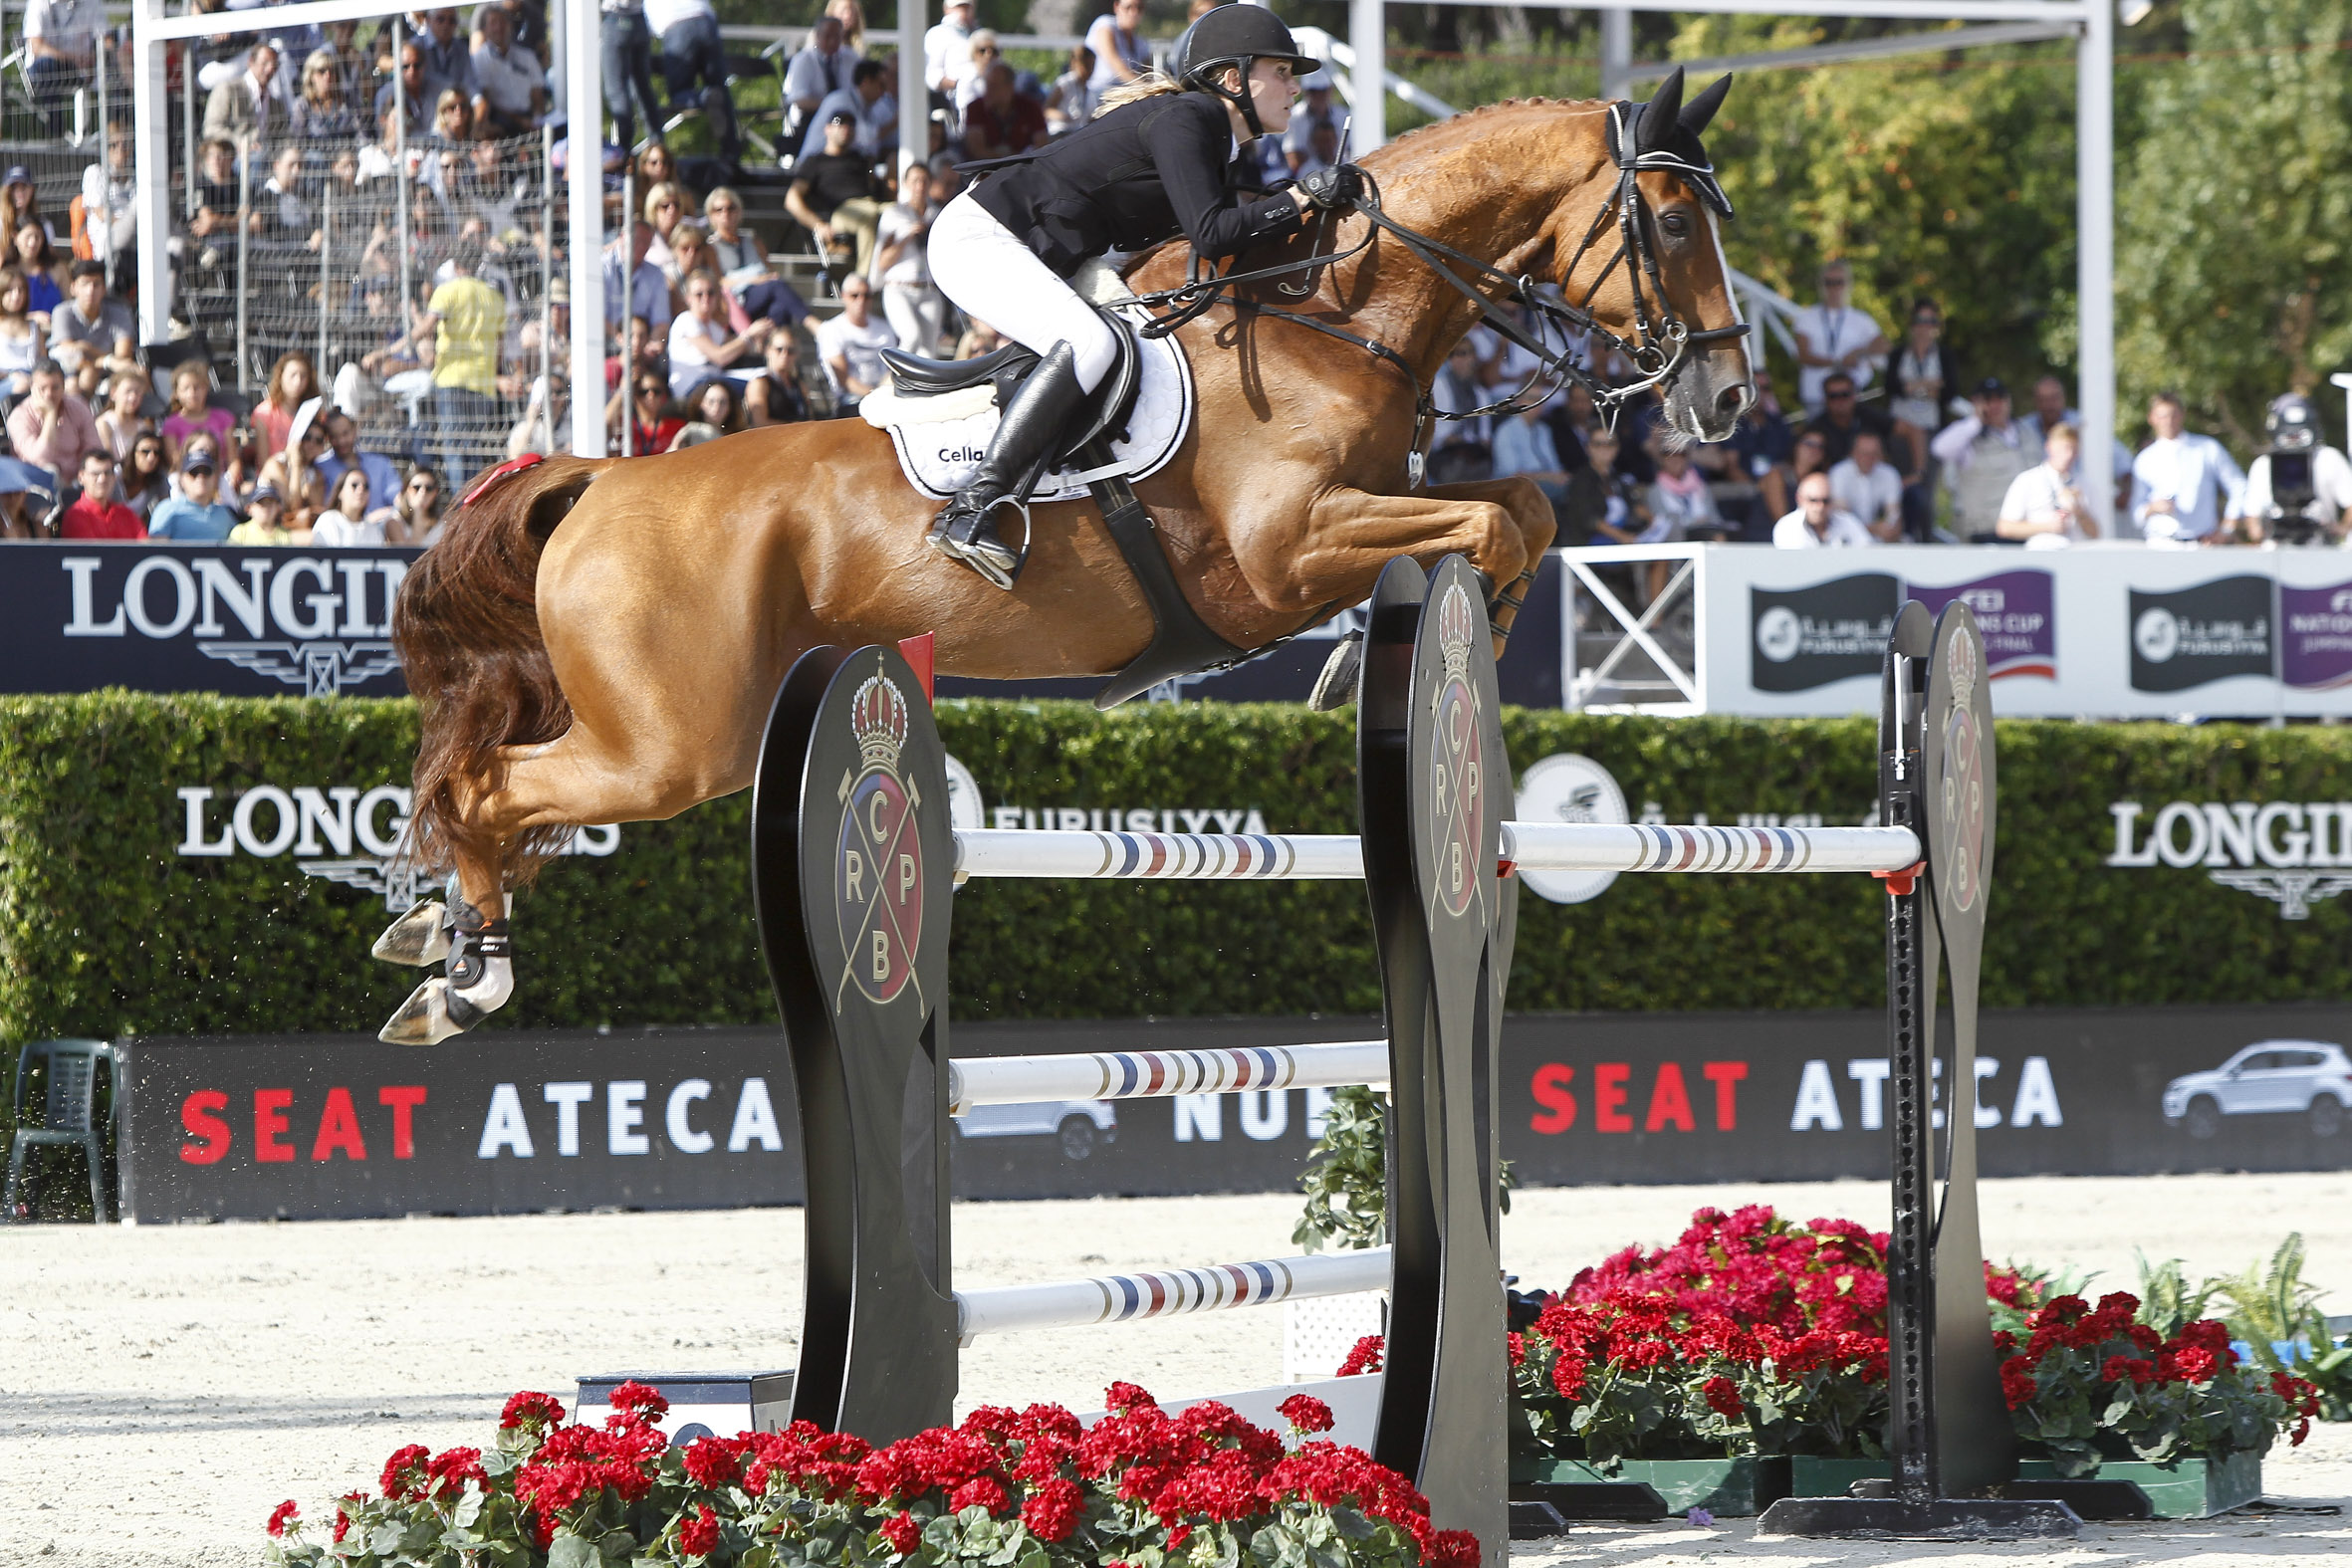 Countdown to CSIO Barcelona 2017 begins  with Longines as new Title Sponsor